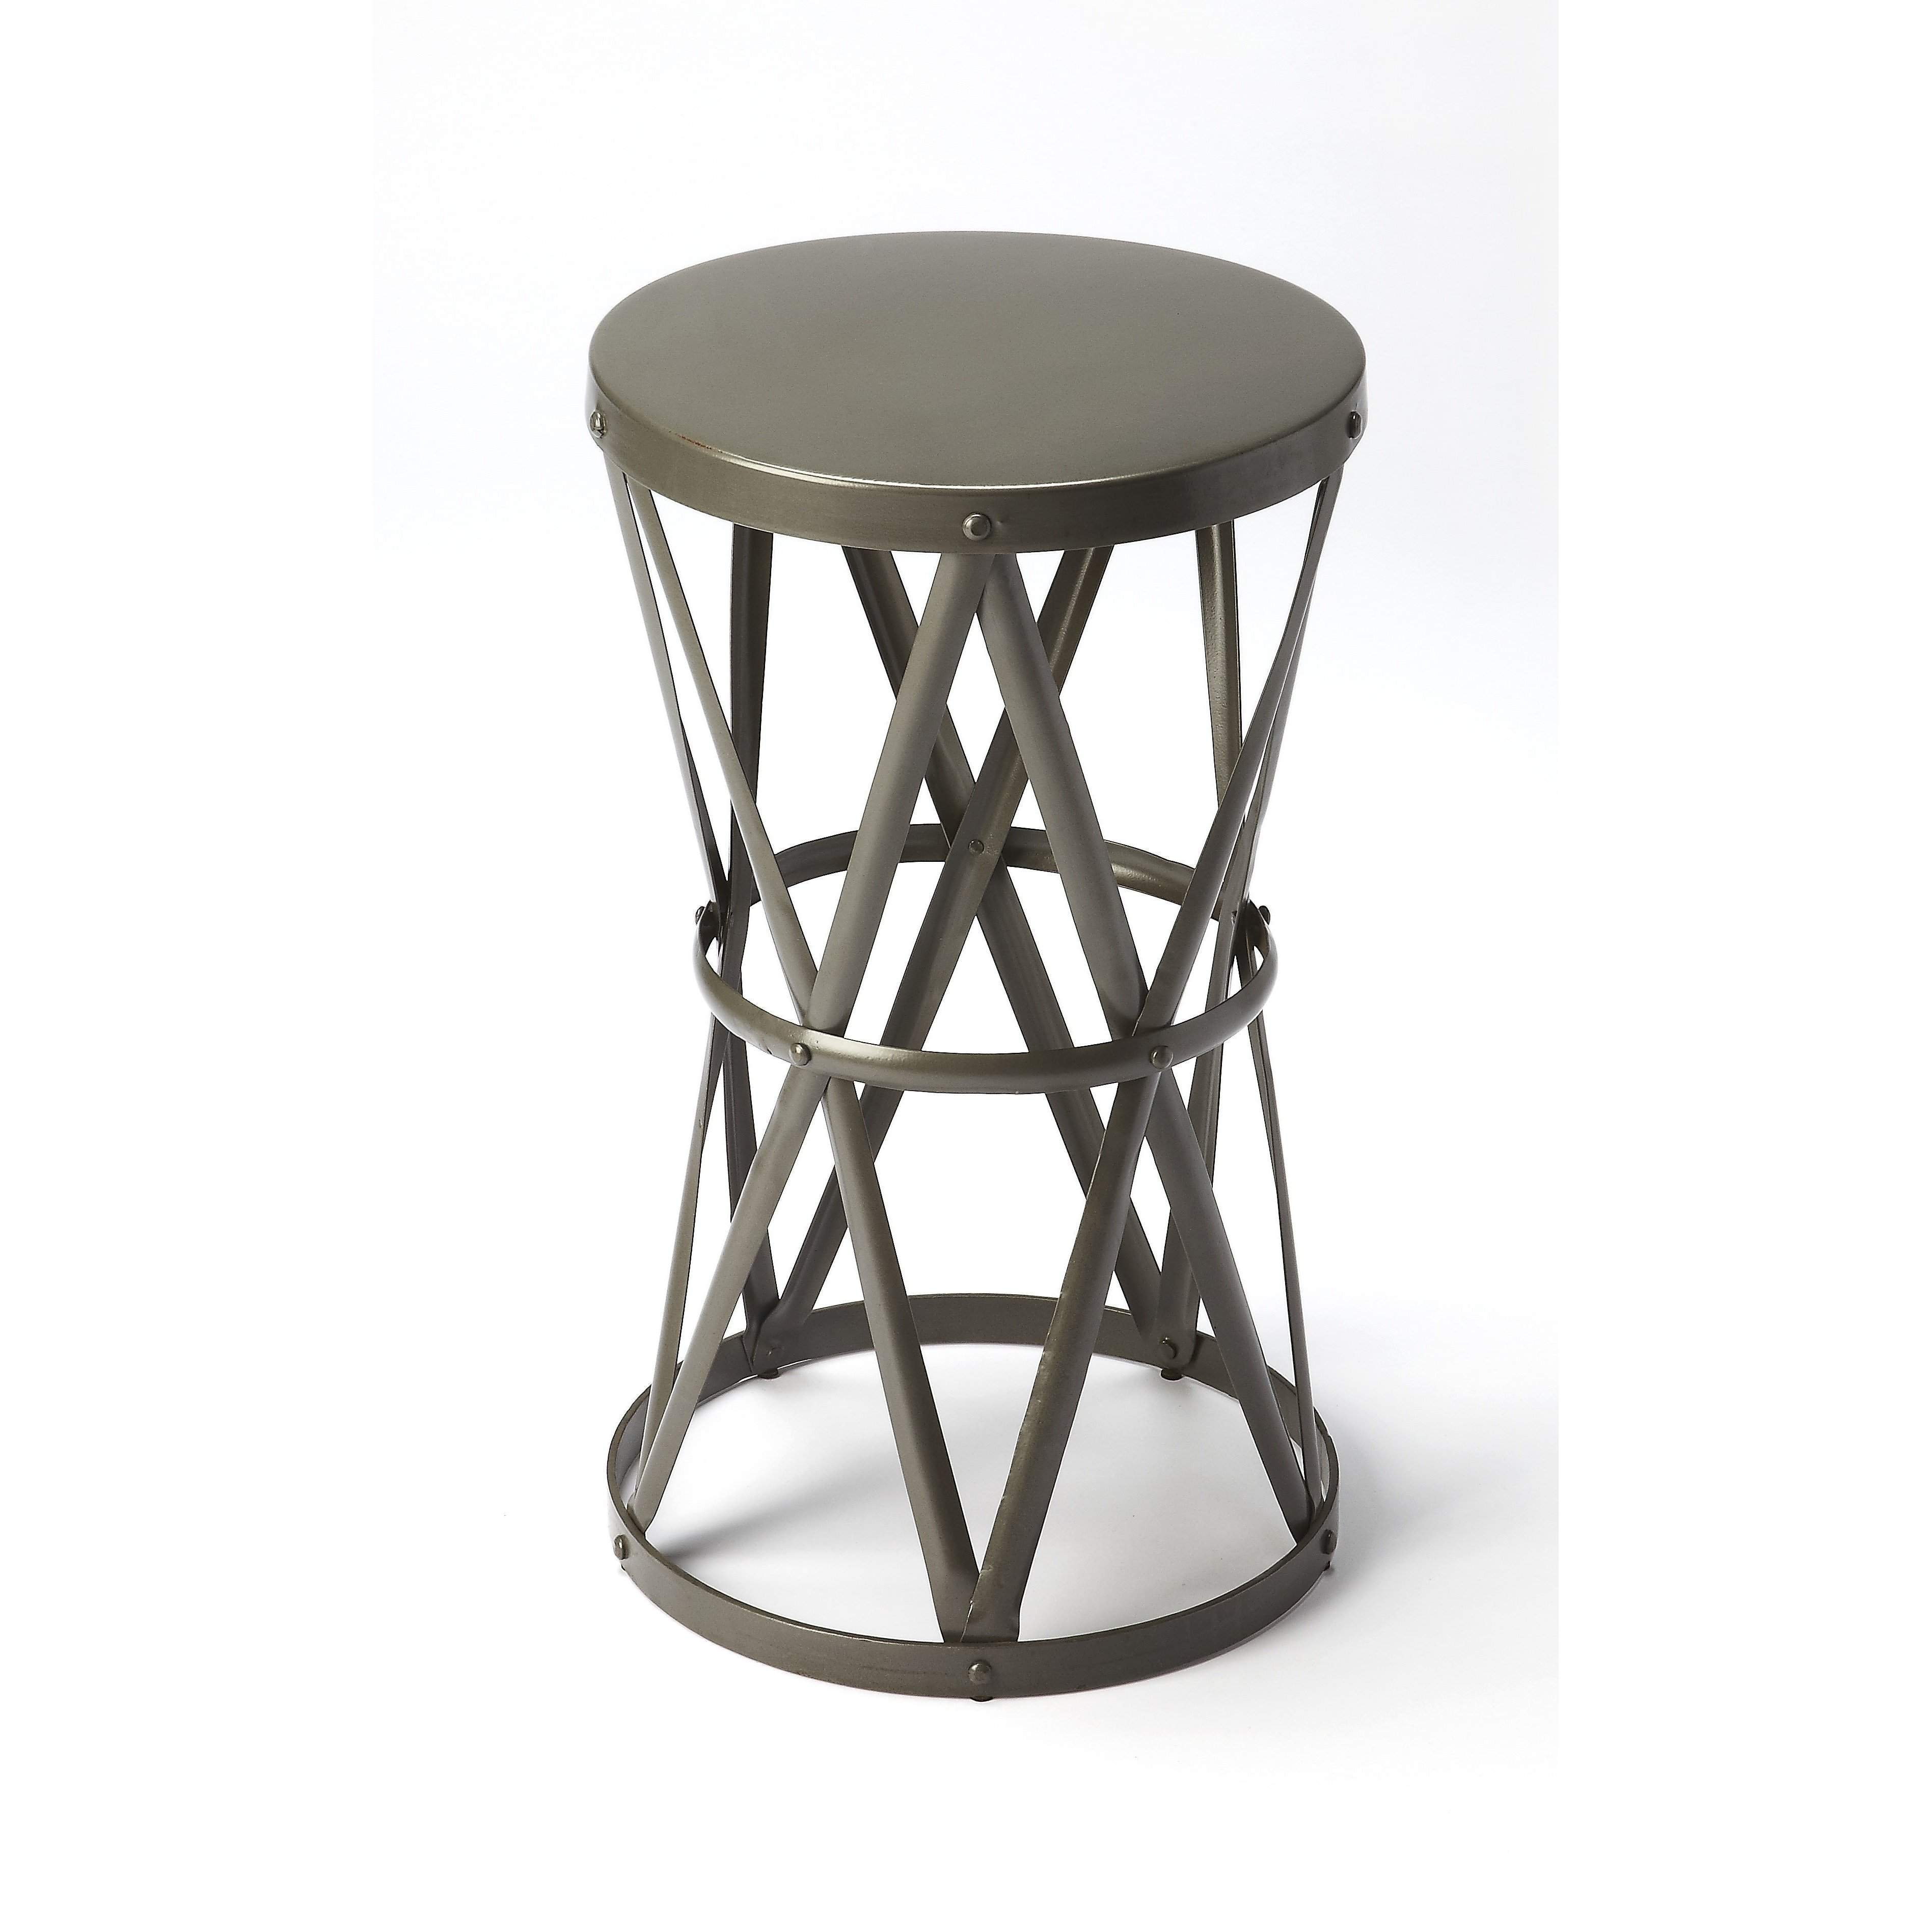 butler empire round iron accent table rounding and products pinebrook garden storage bench seat tama drum throne contemporary lamps for living room small collapsible side pub